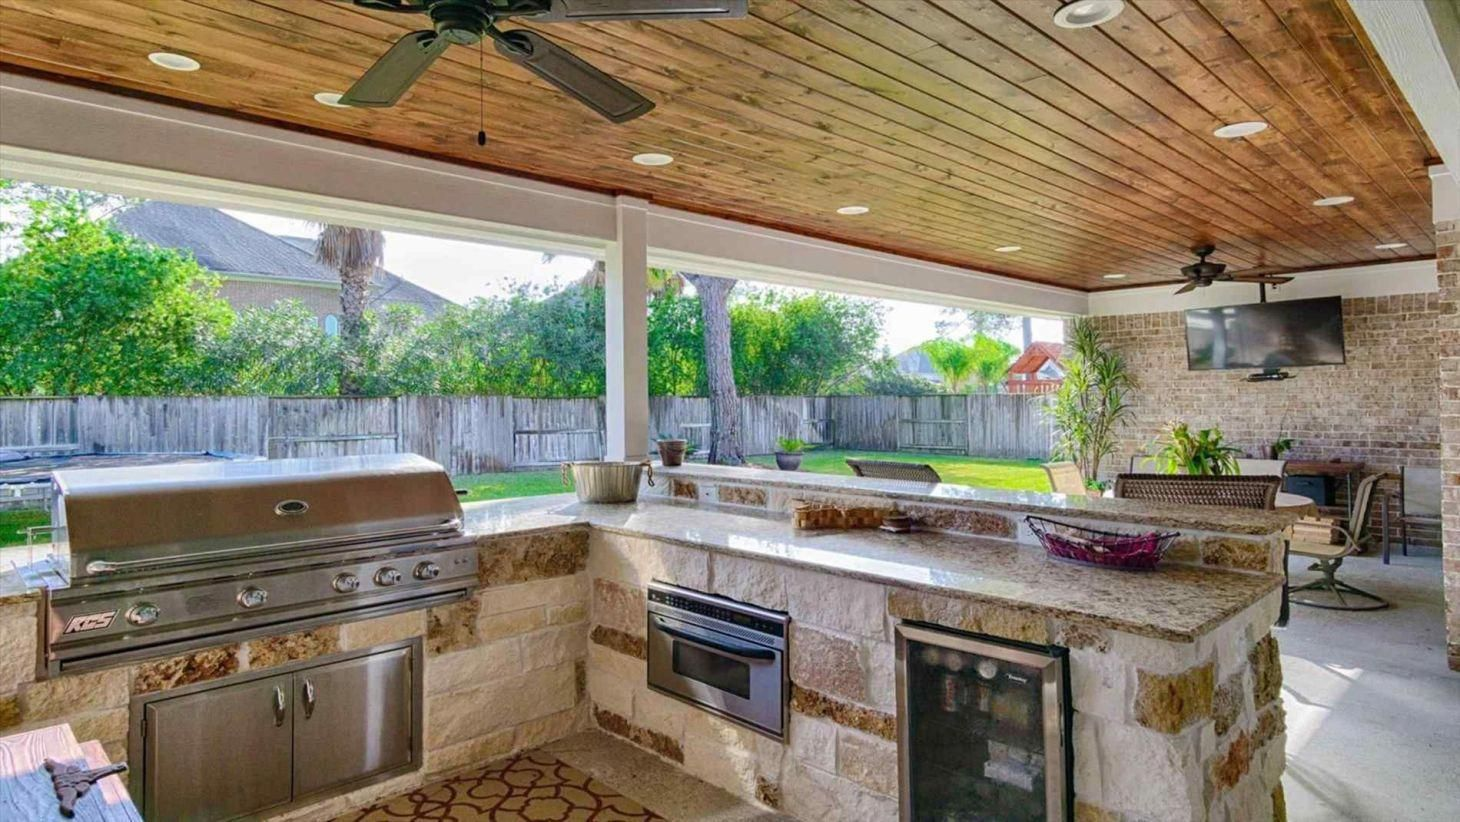 Pin By Crystal Cornett On Outdoor Kitchens In 2020 Covered